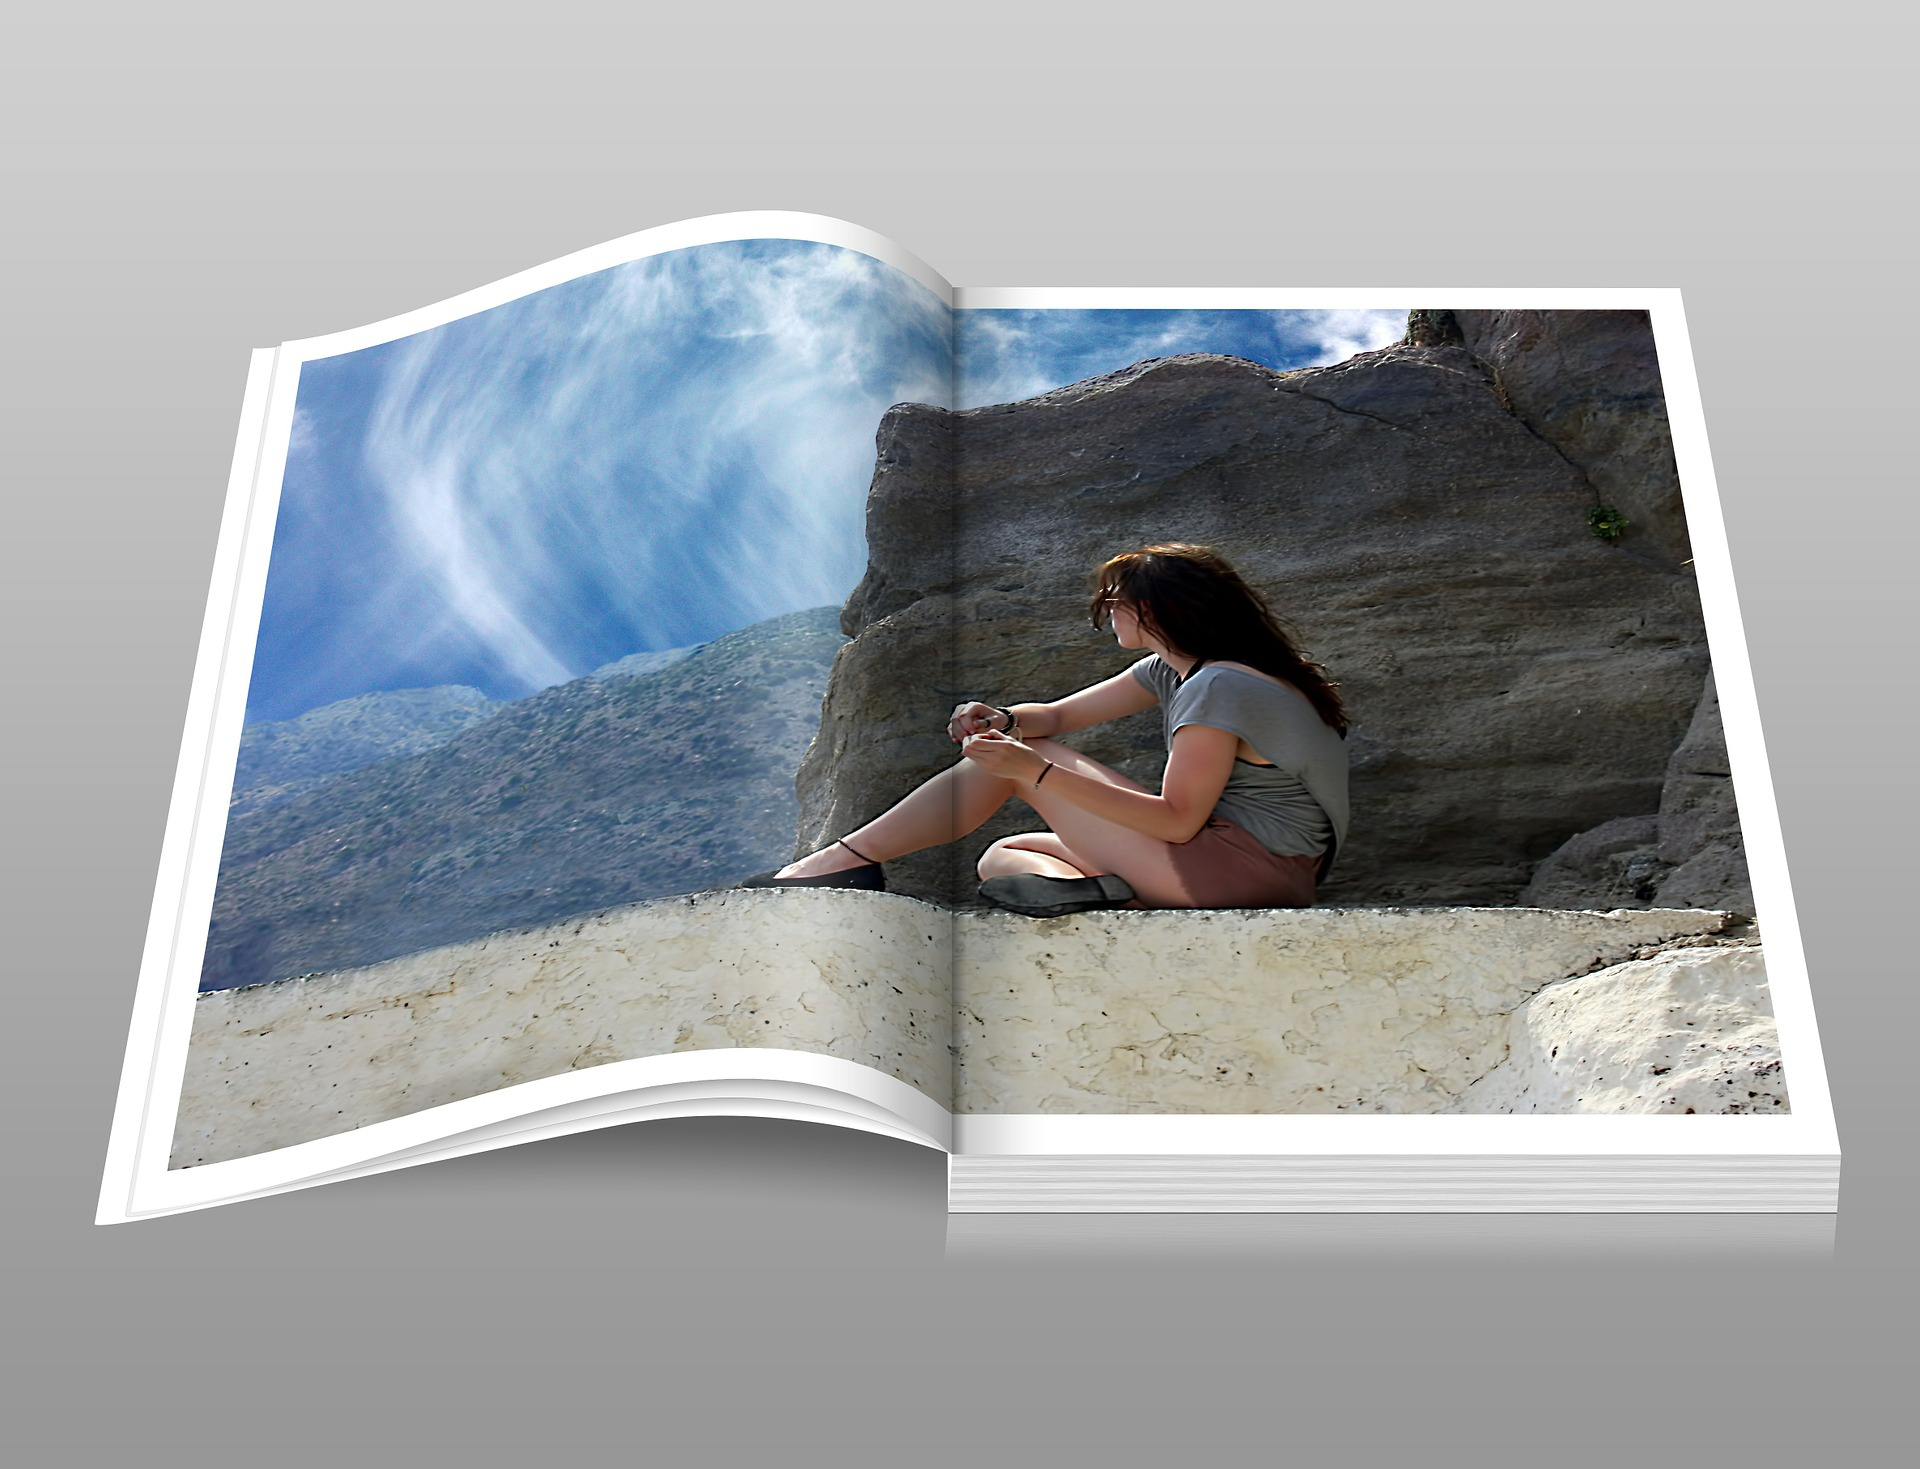 booklet-426781_1920